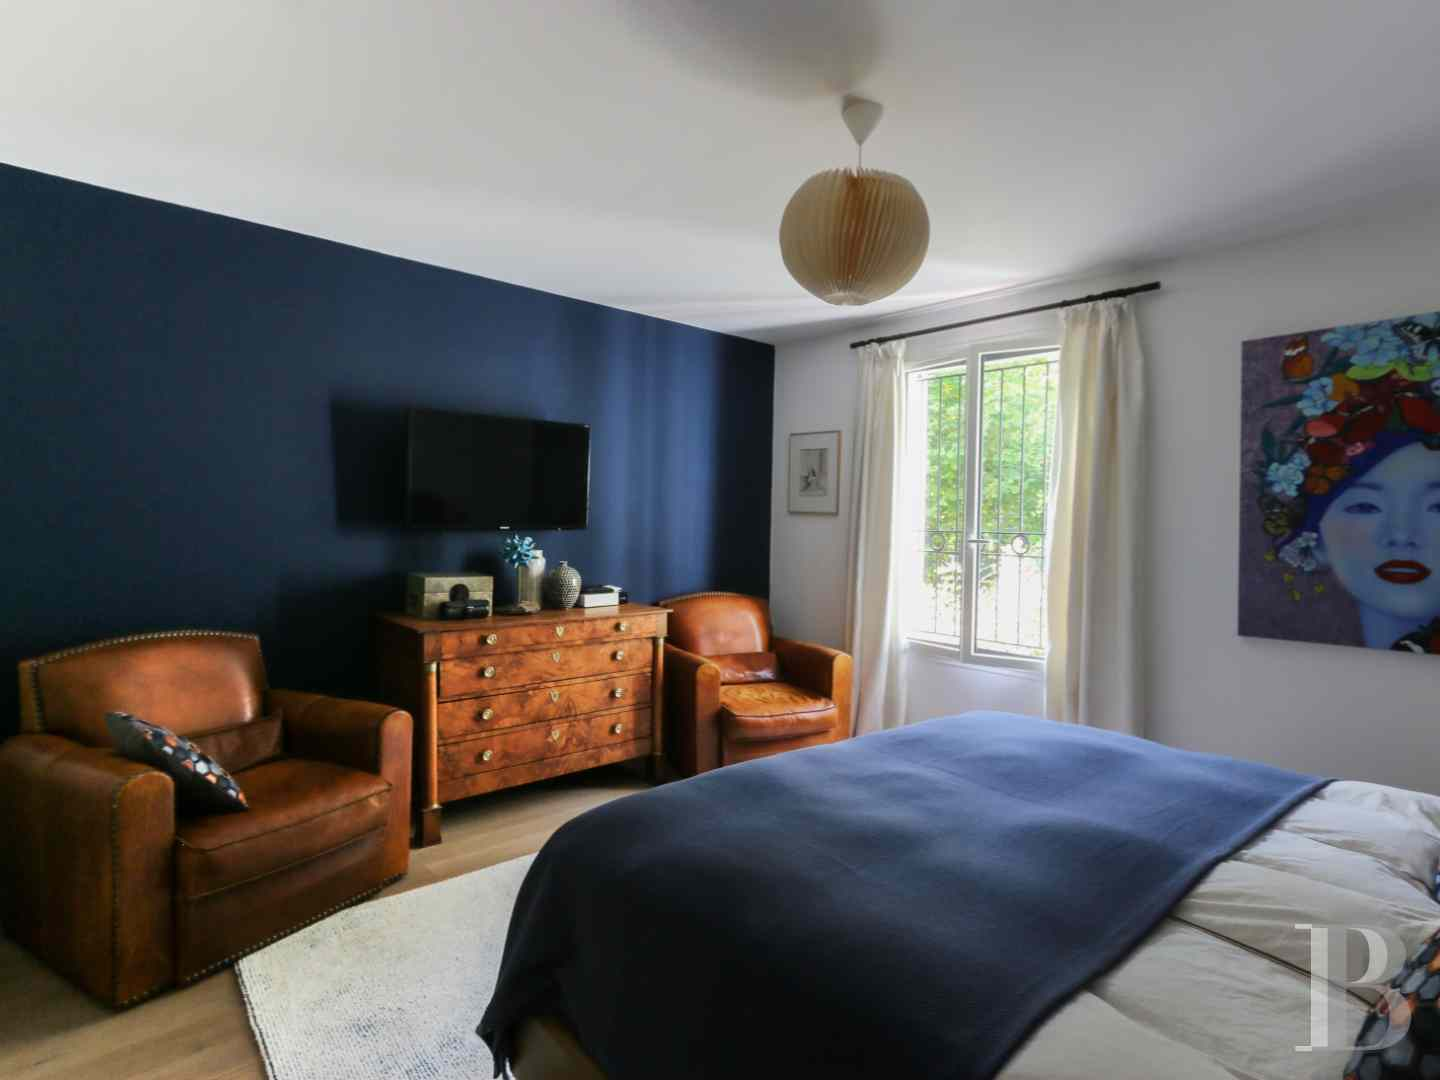 property for sale France paris residences 20th - 9 zoom